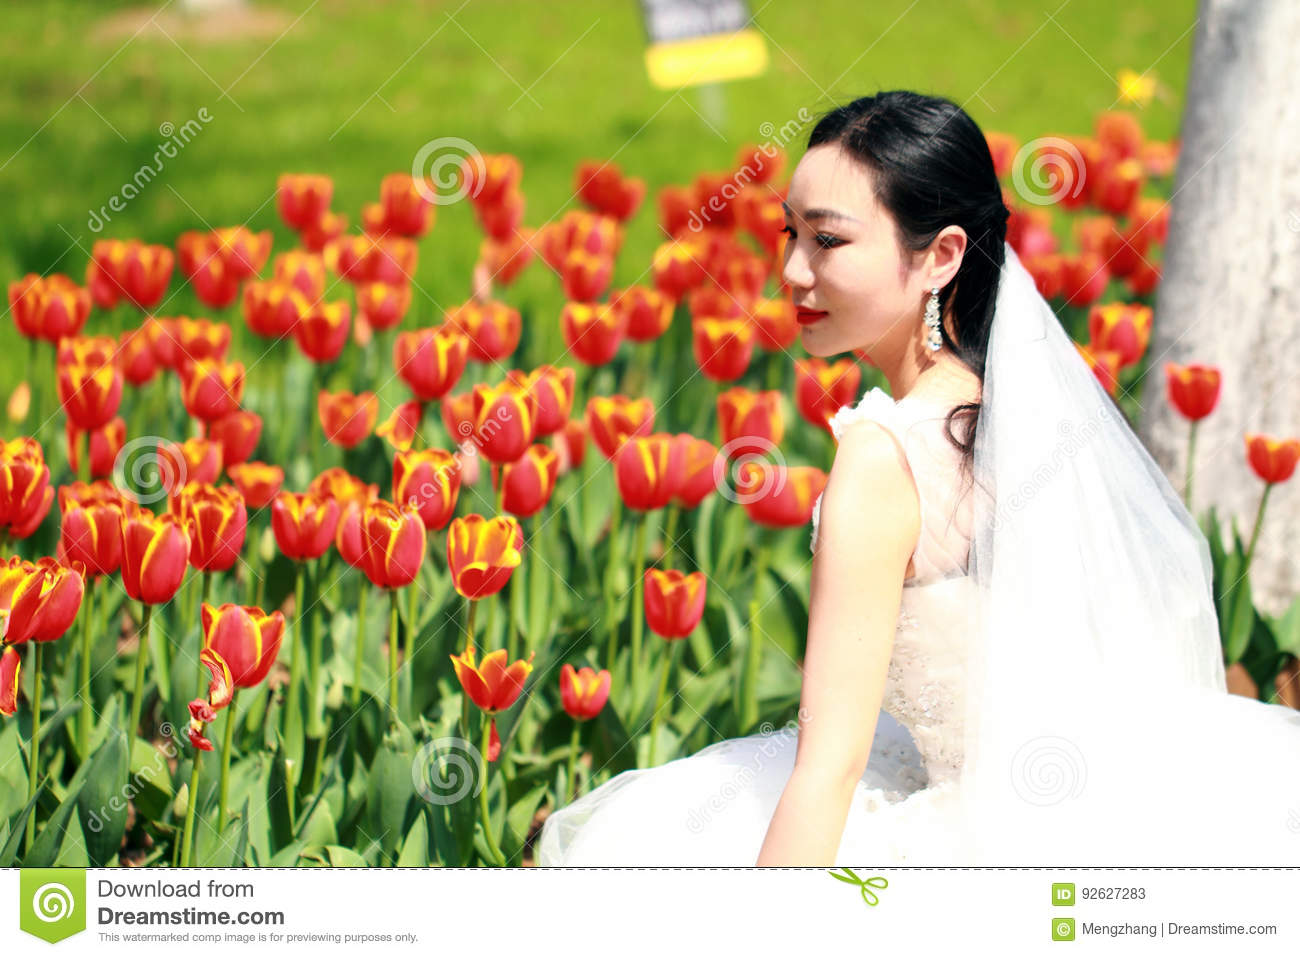 Girl bride in wedding dress with elegant hairstyle, with white wedding dress in red Tulips field